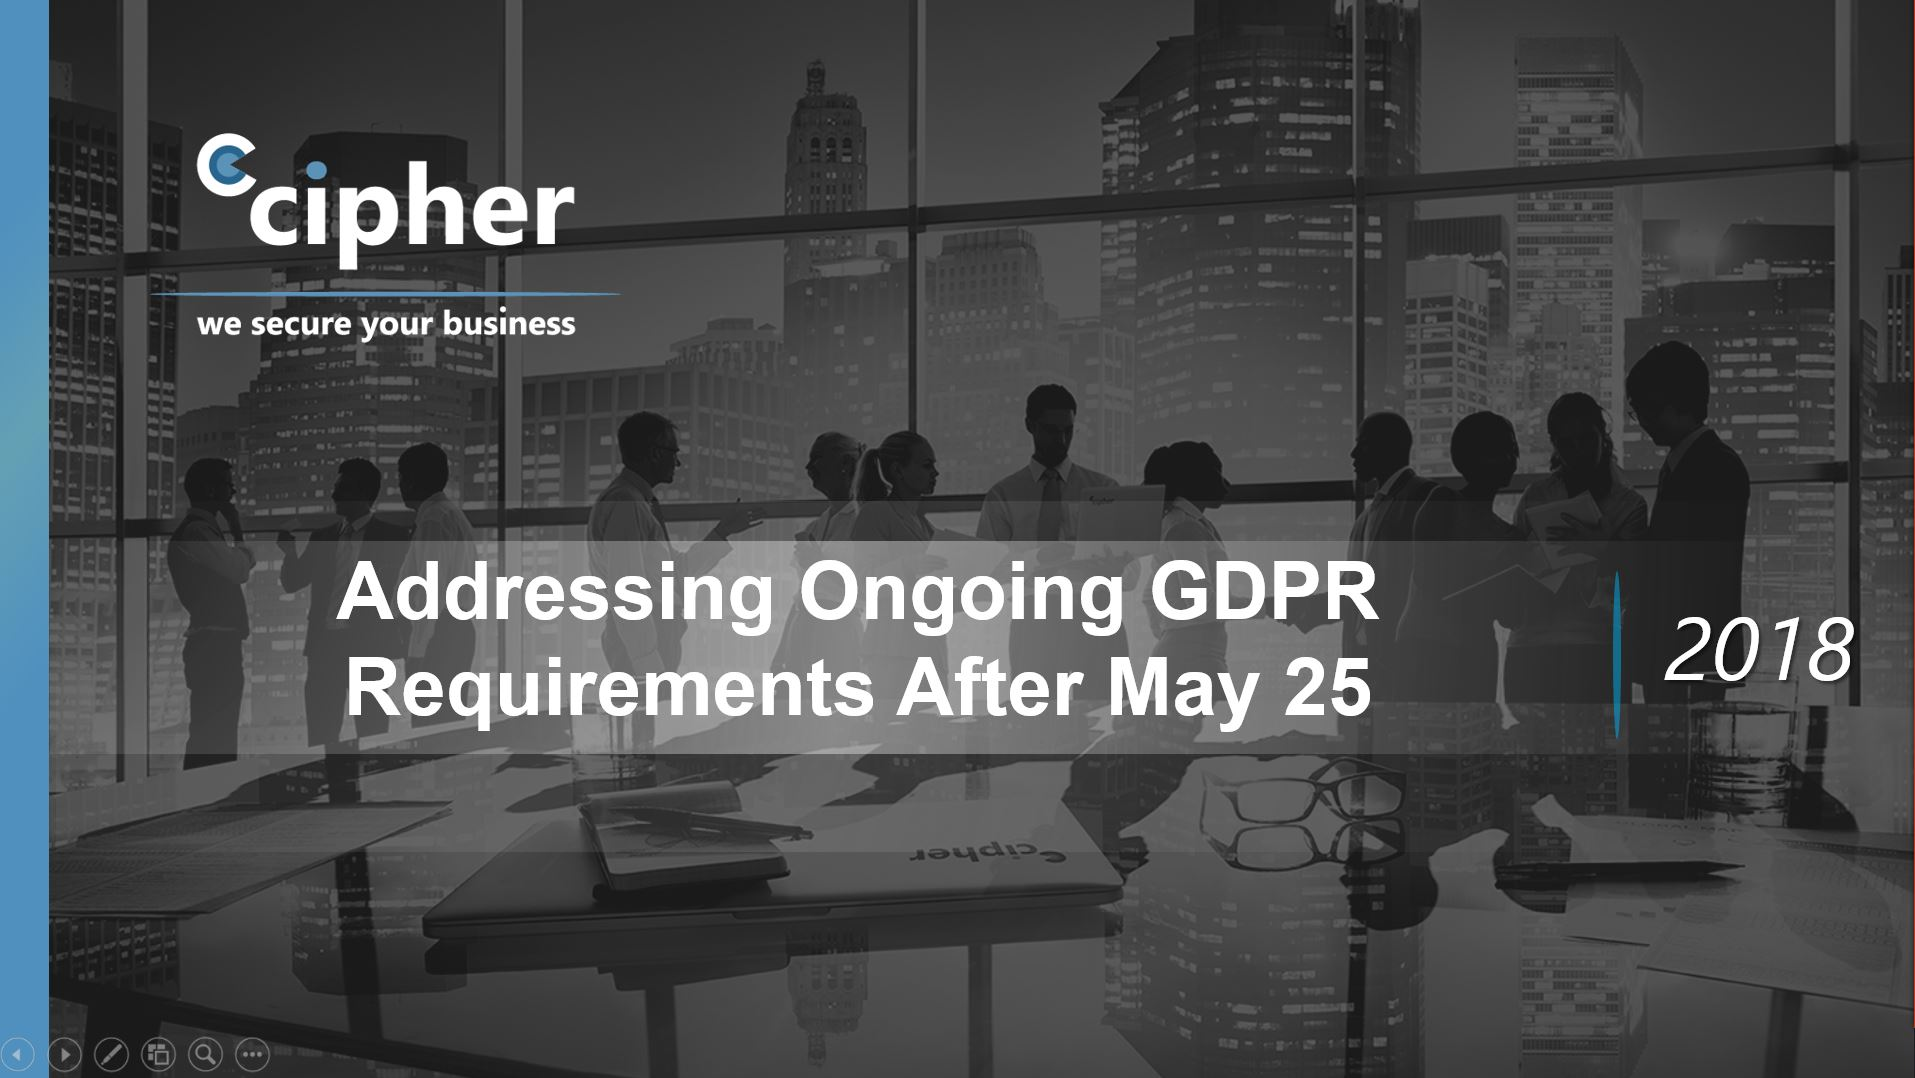 Addressing Ongoing GDPR Requirements